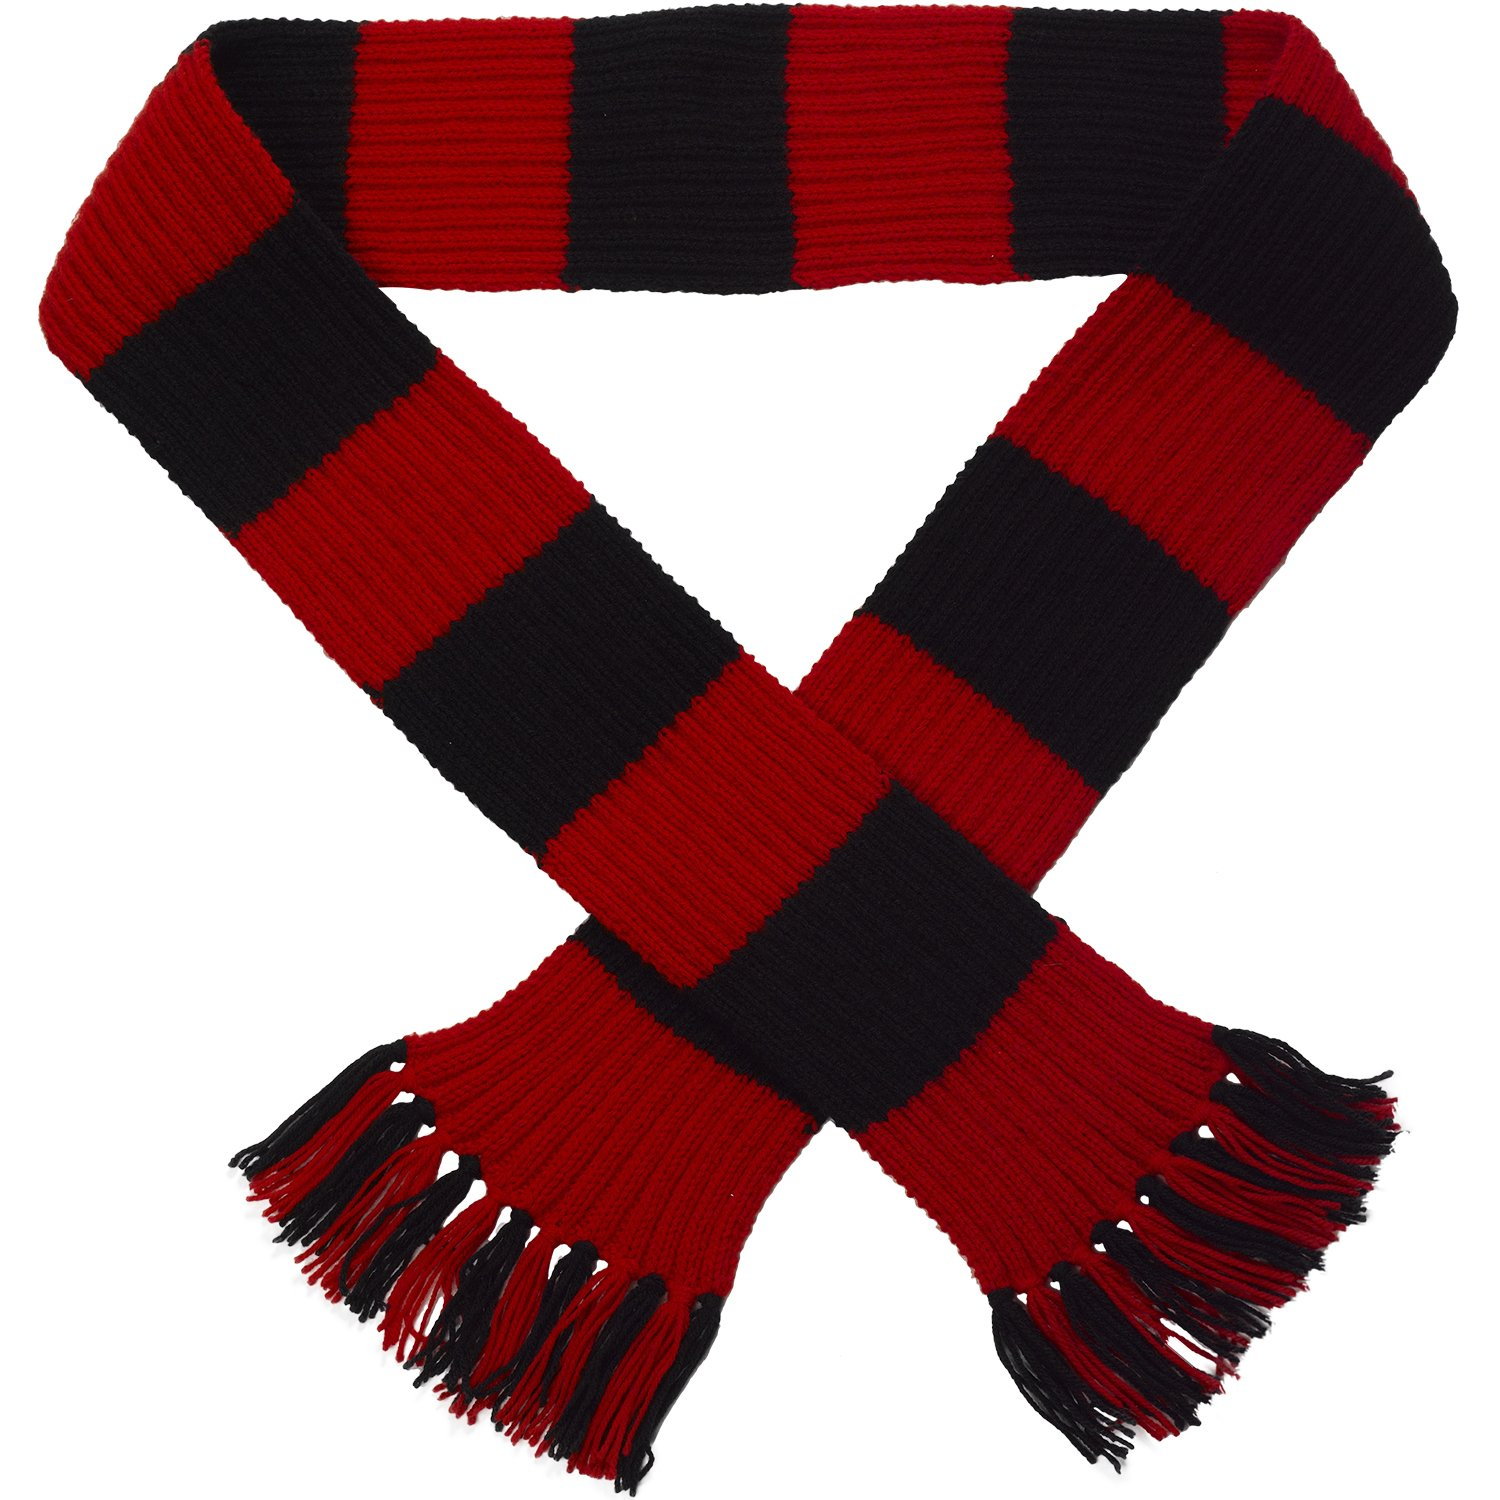 Classic Home Store Striped Football Rugby Scarf Kit Knitting